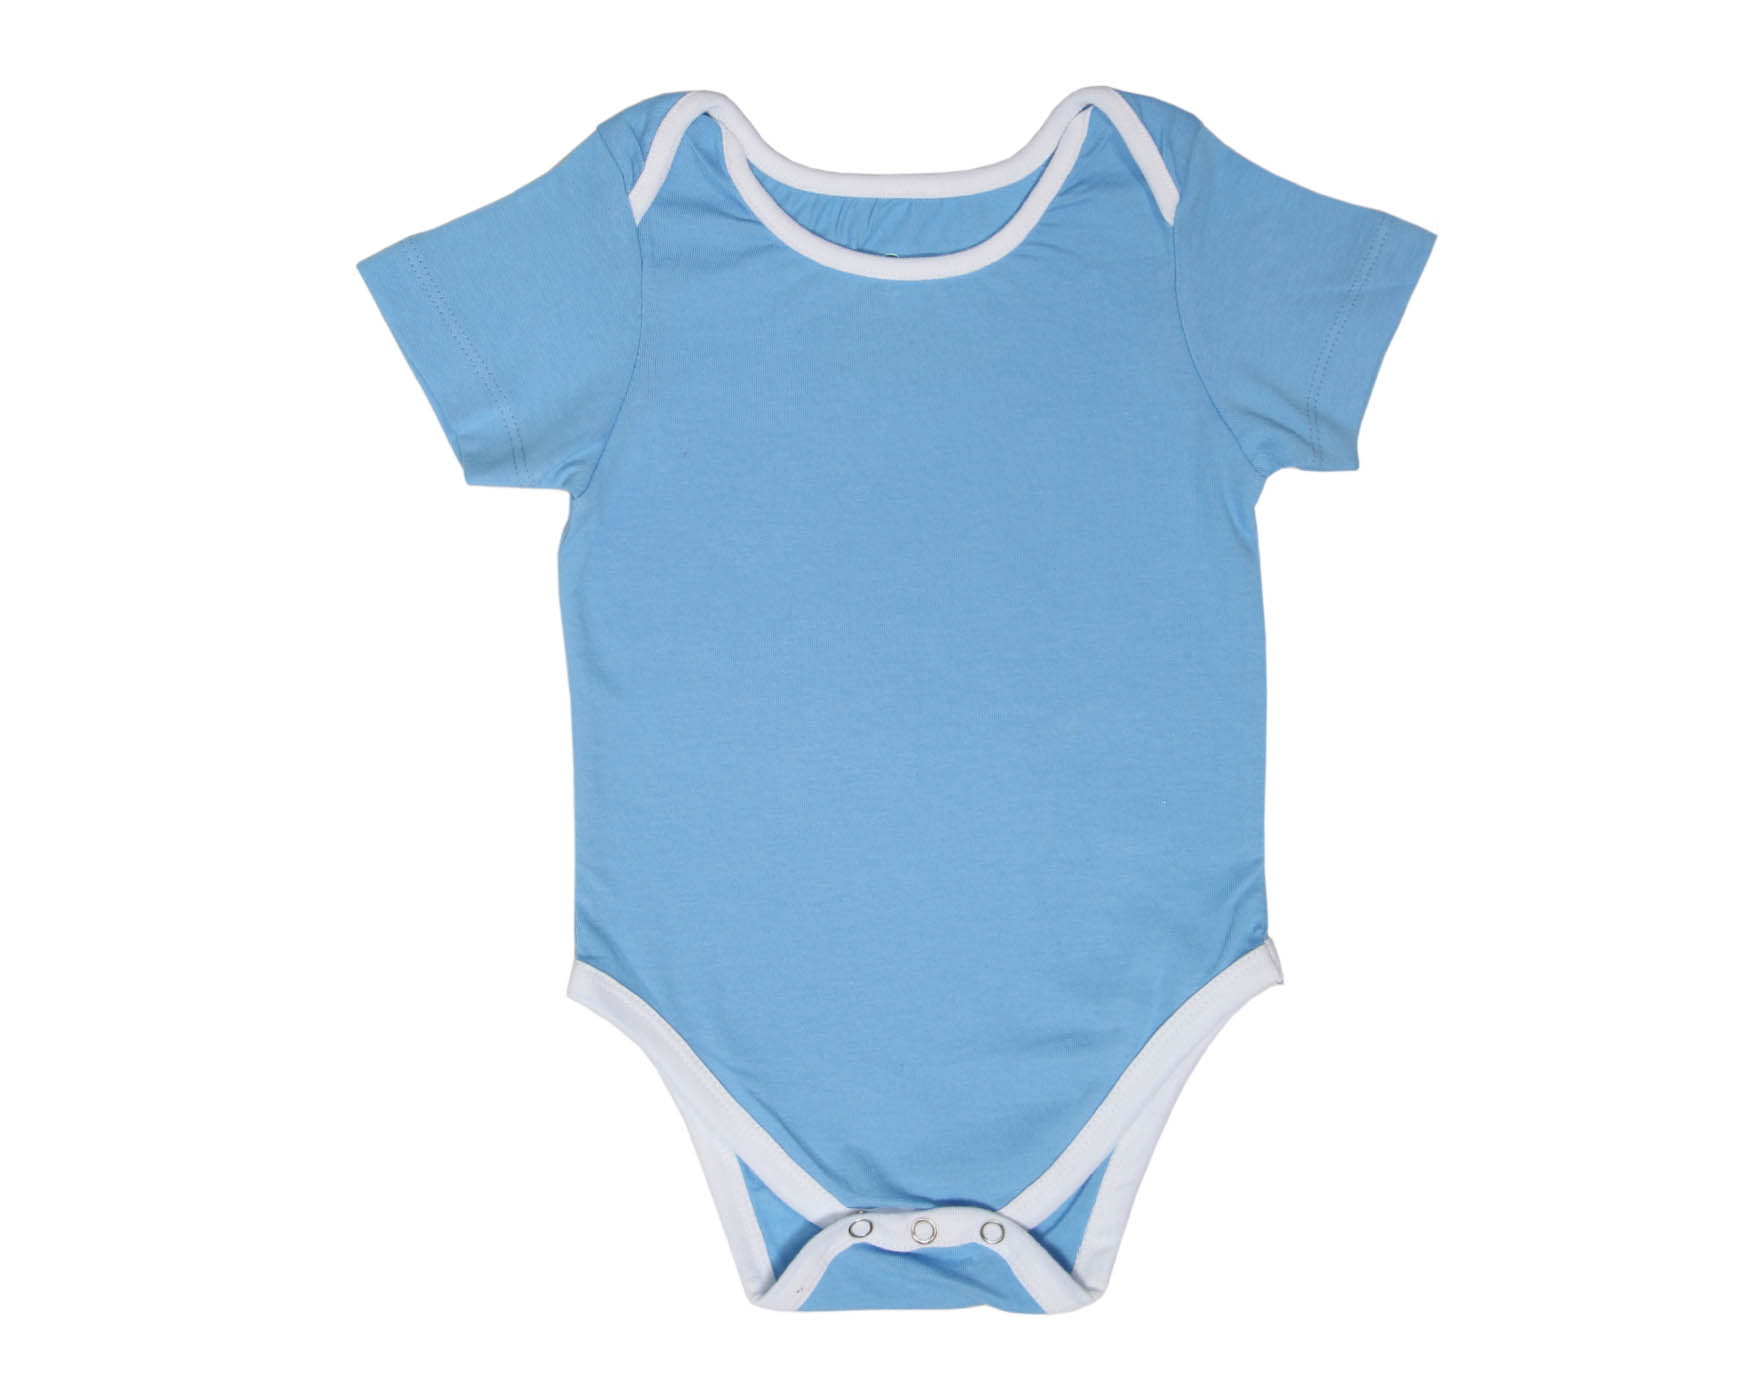 Plain Onesies Baby Rompers for Boys and Girls: Plain Onesies Baby ...